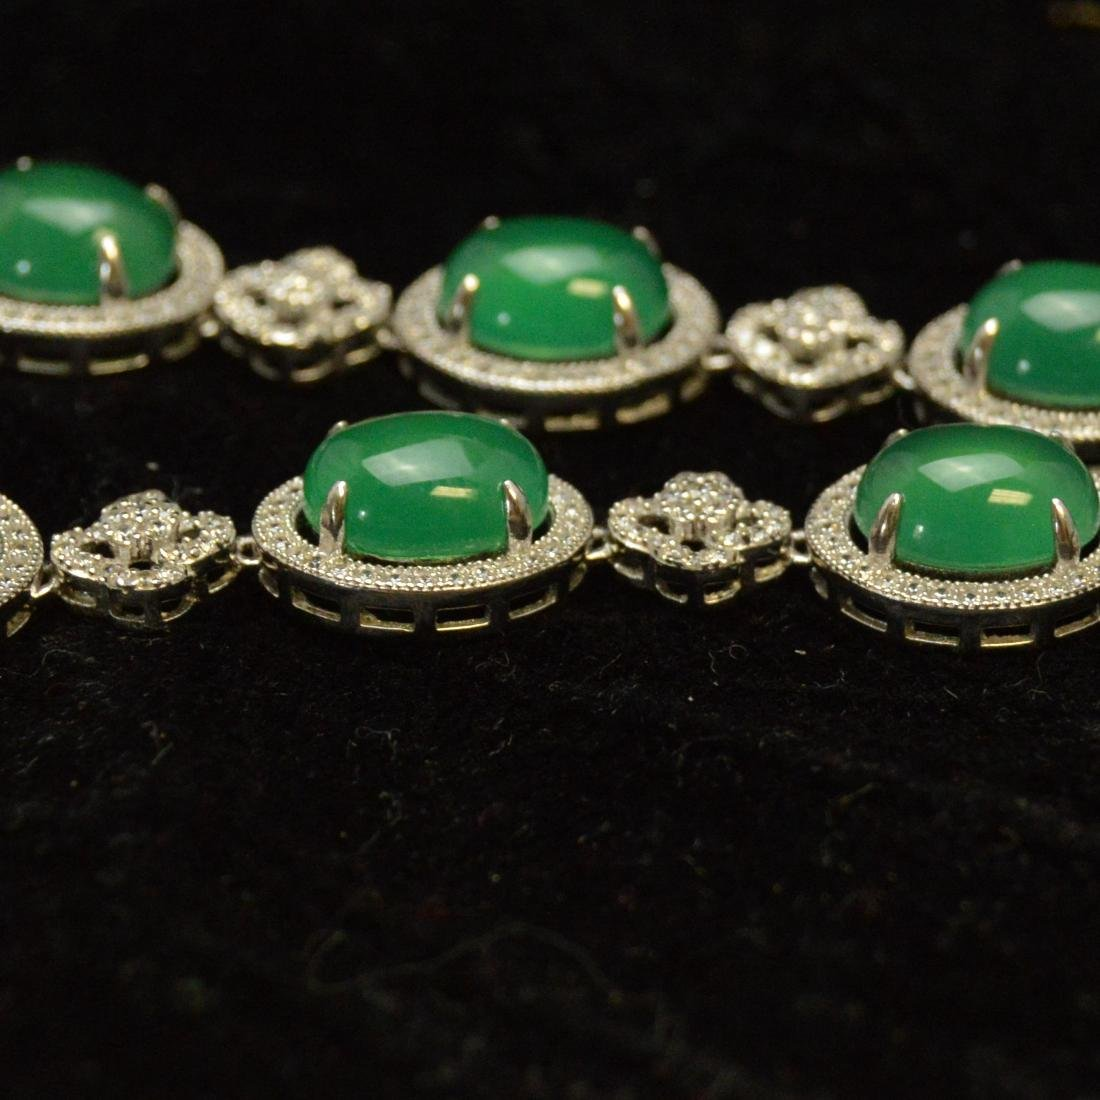 Green Agate Necklace - 6